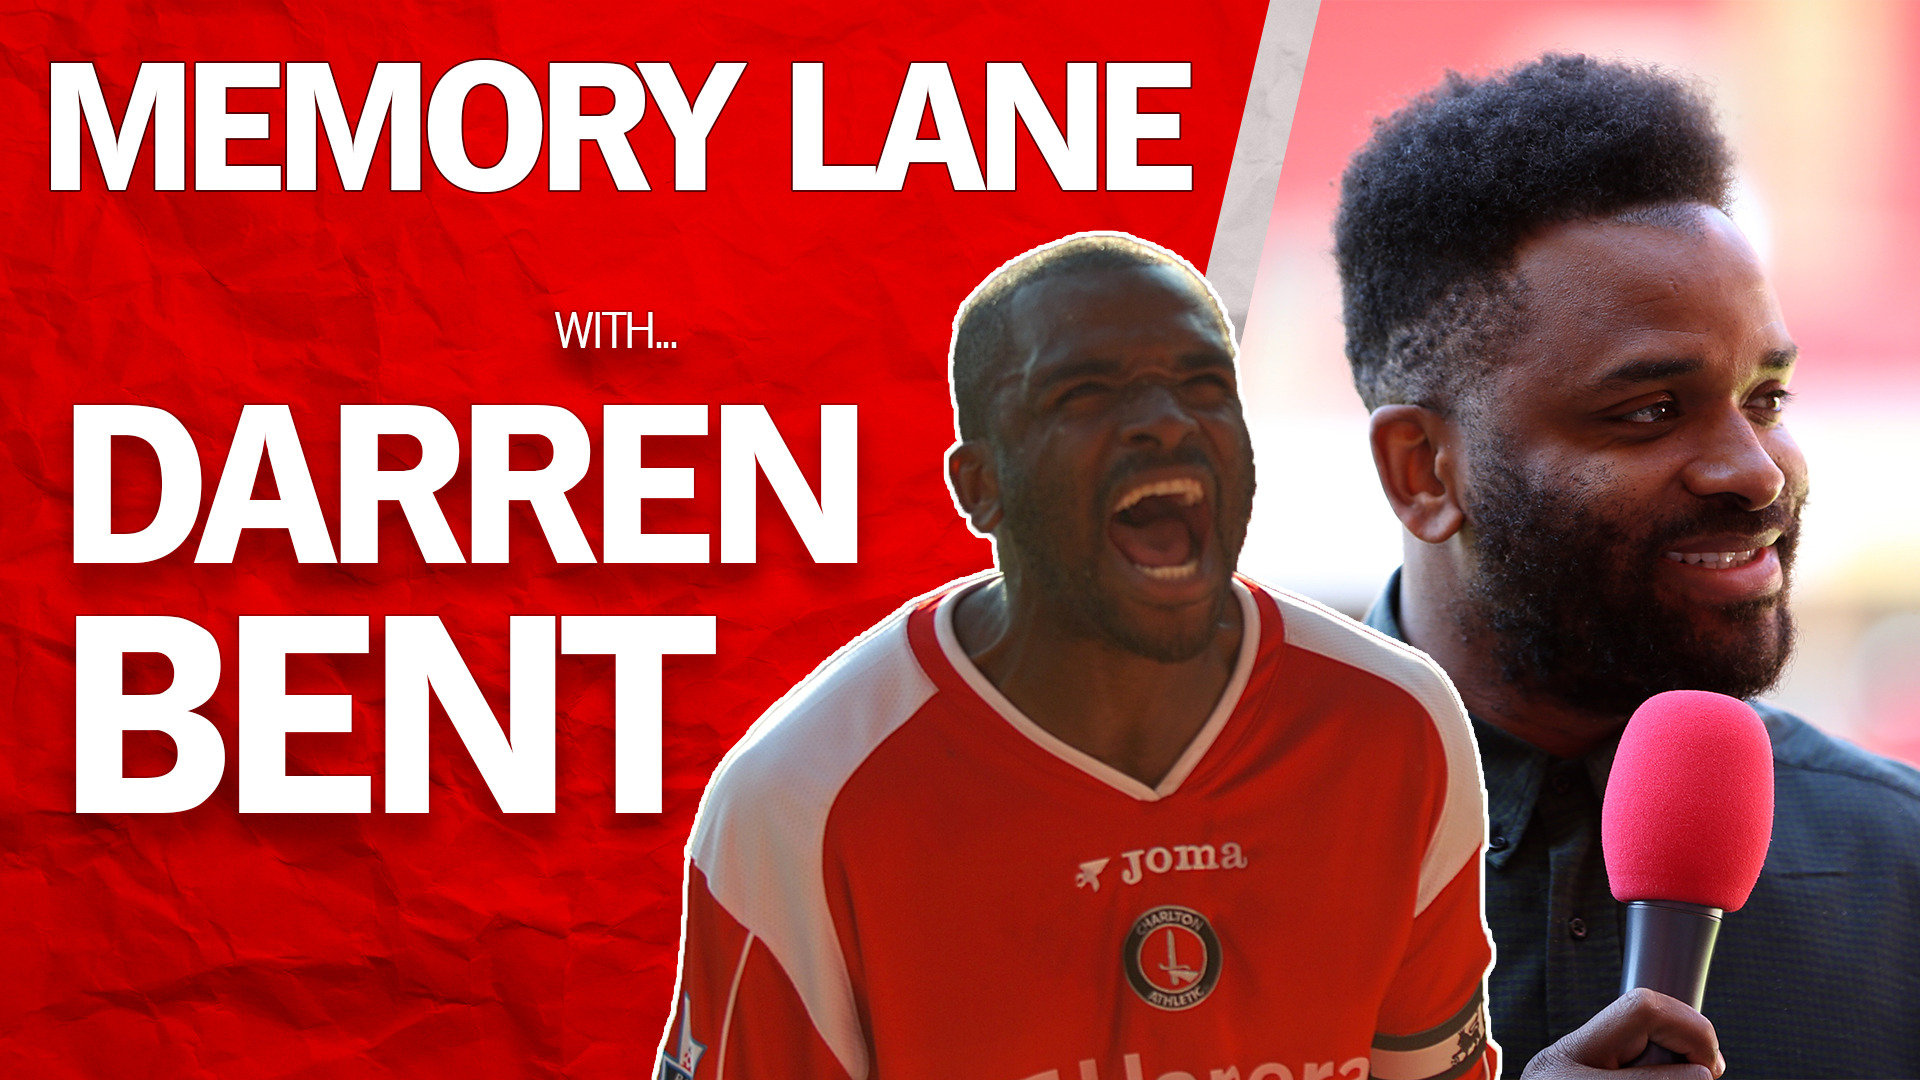 MEMORY LANE | Darren Bent (April 2021)